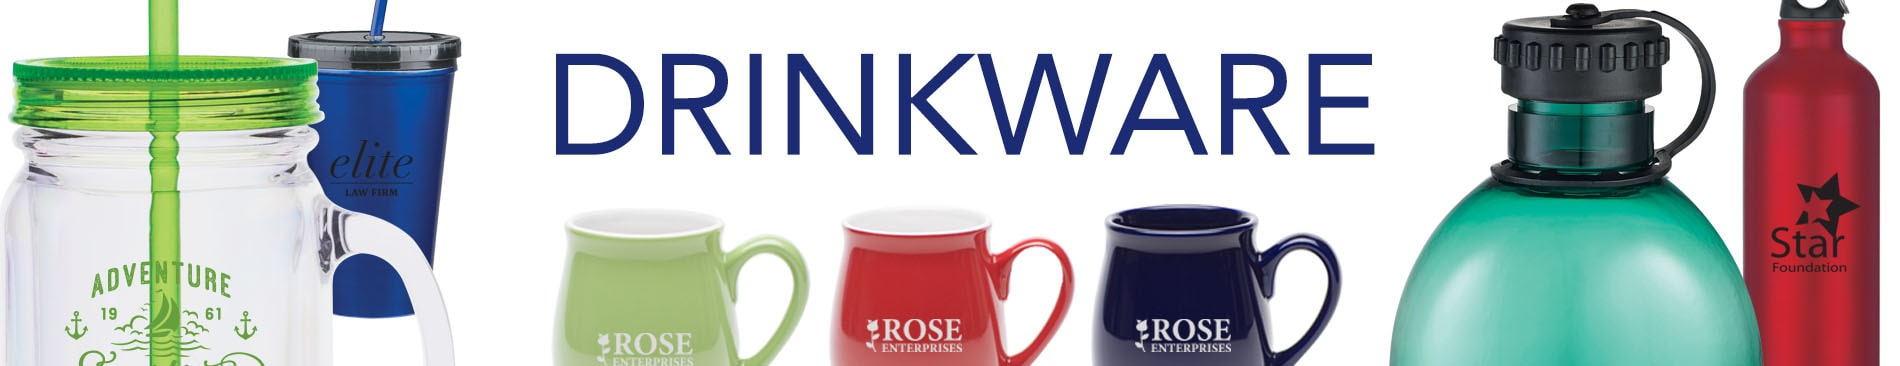 promotional drinkware products